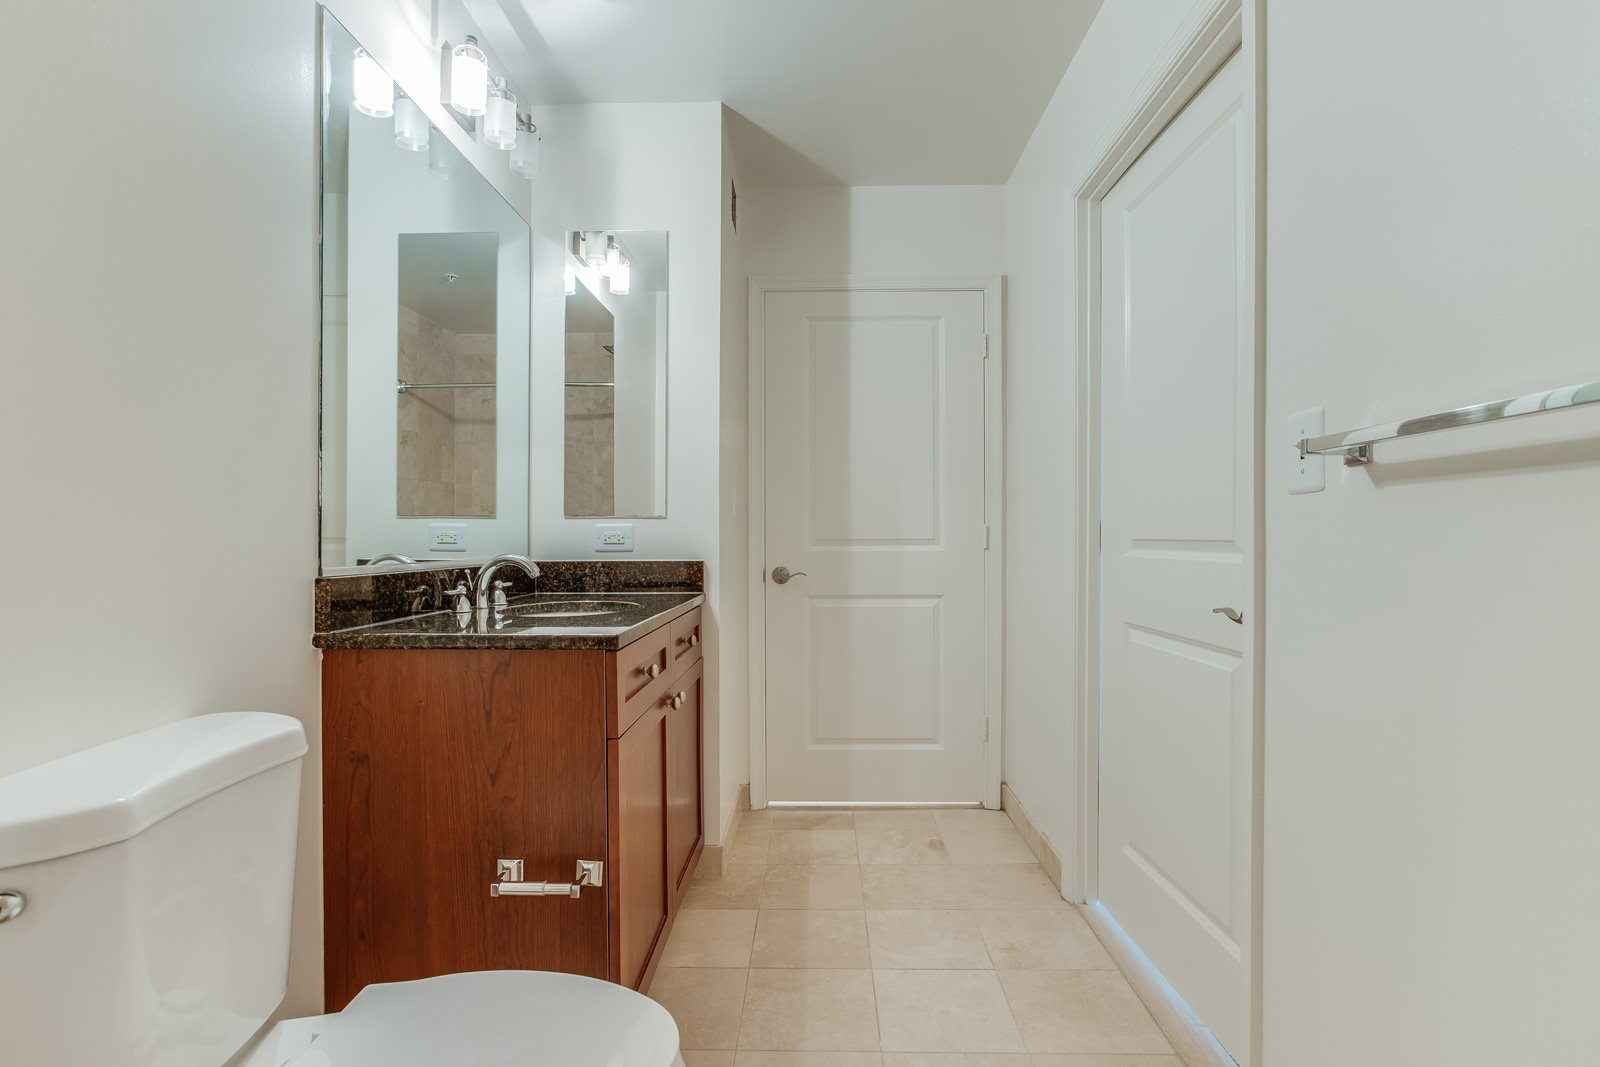 Luxurious Bathrooms with Granite Countertops and Slate Tile at Halstead Tower by Windsor, Alexandria, VA